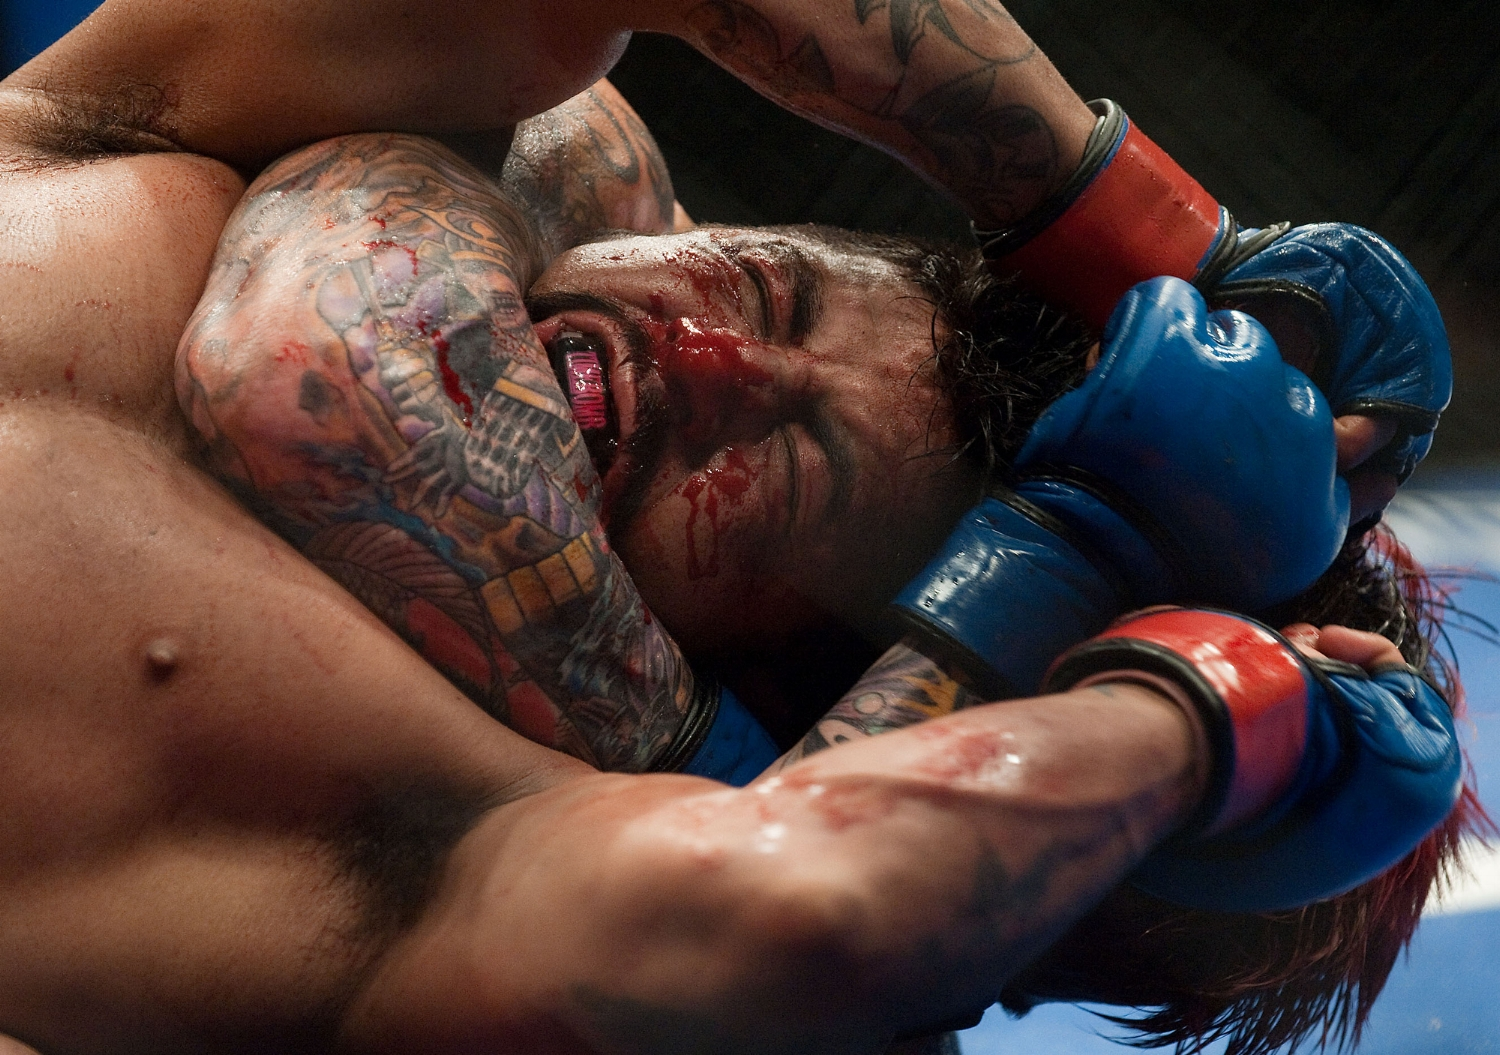 Antonio Banuelos is bloodied by opponent Scott Jorgensen during their bantamweight undercard fight at Arco Arena on Saturday. Banuelos lost the fight by decision.